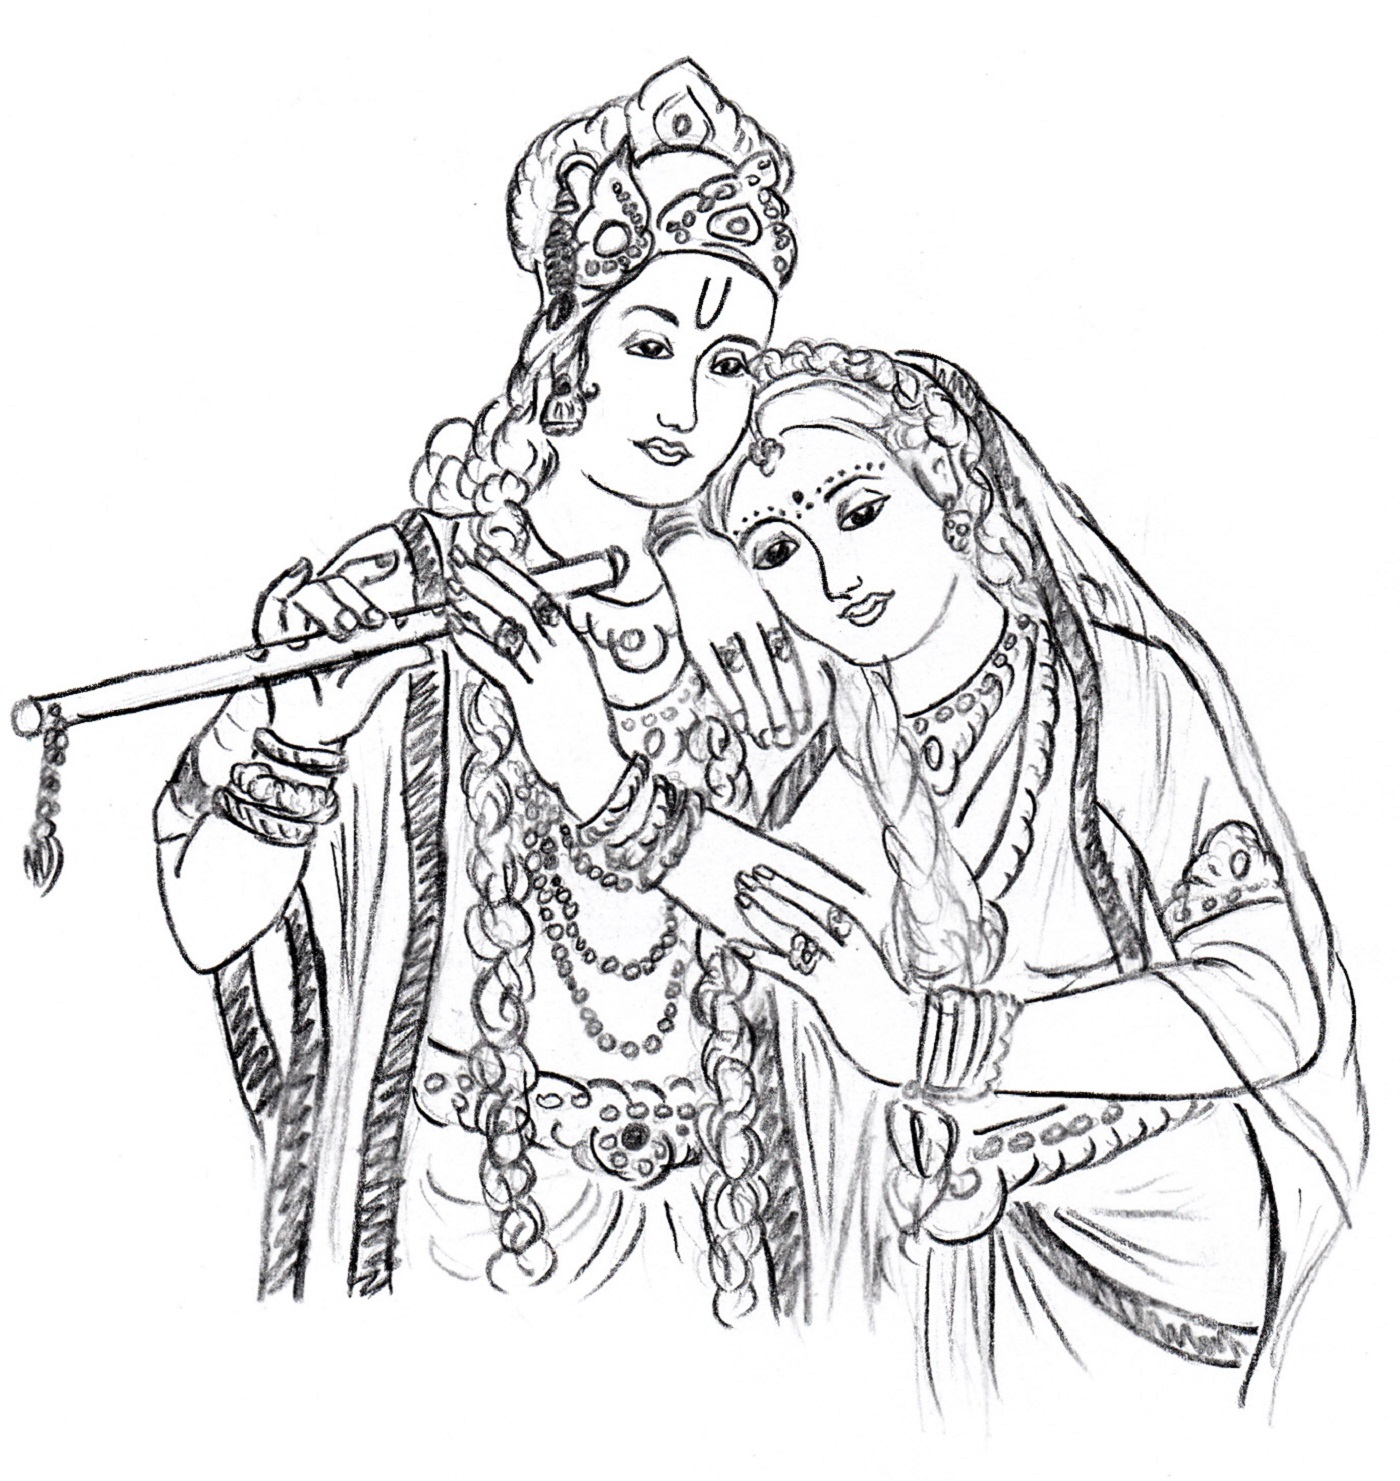 Download the above pattern - Radha Krishna Black And White PNG